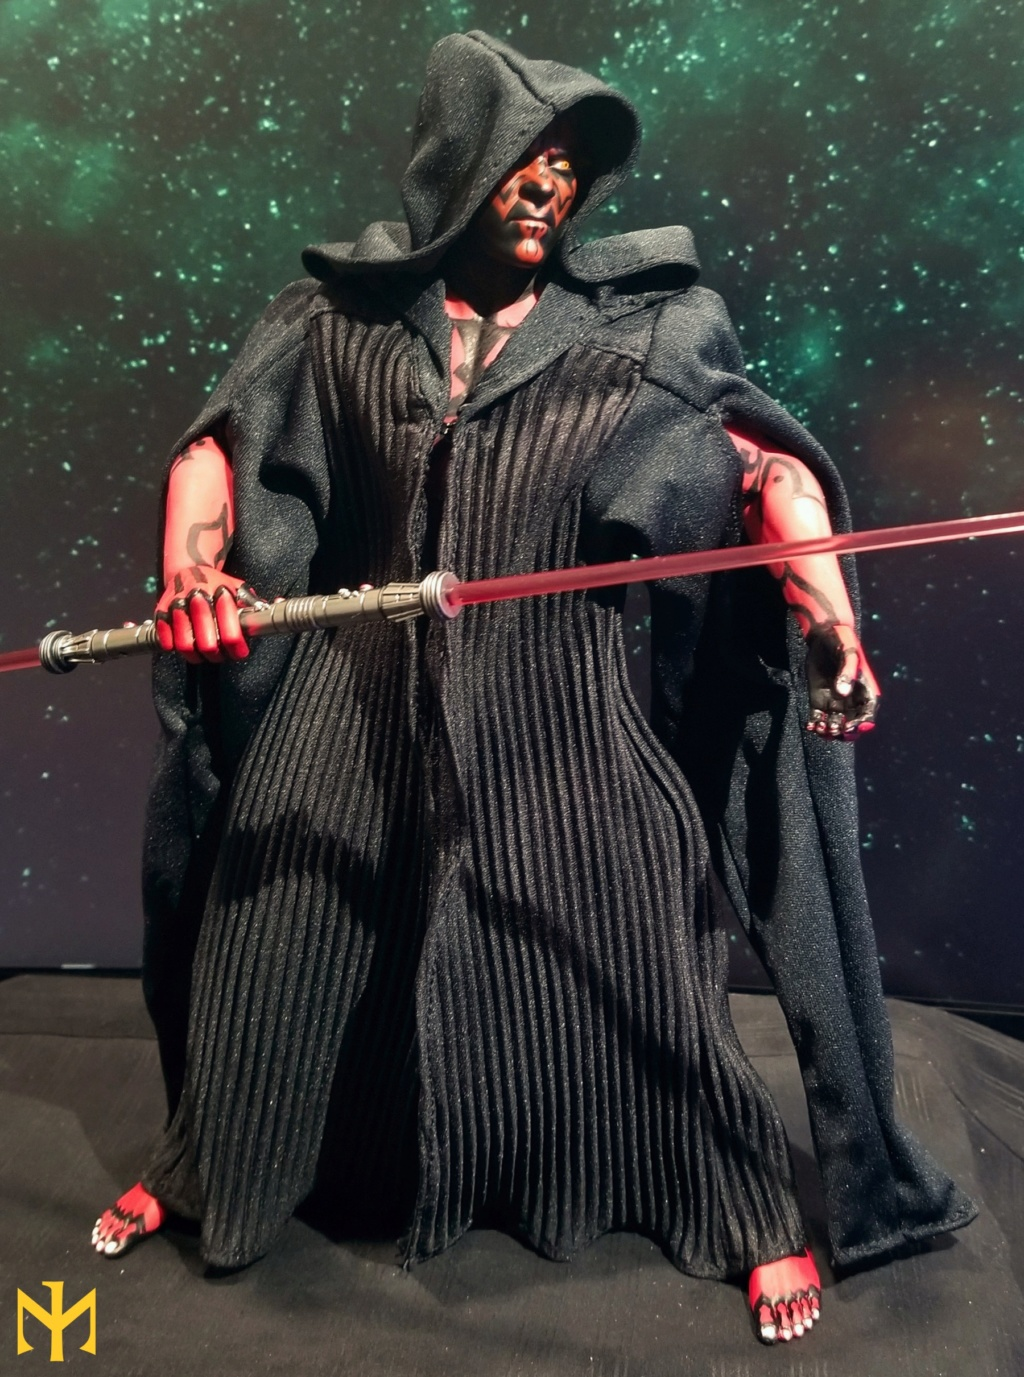 STAR WARS Updated Darth Maul Custom Part IV Maul 2.0 (photo heavy) Swdmt011